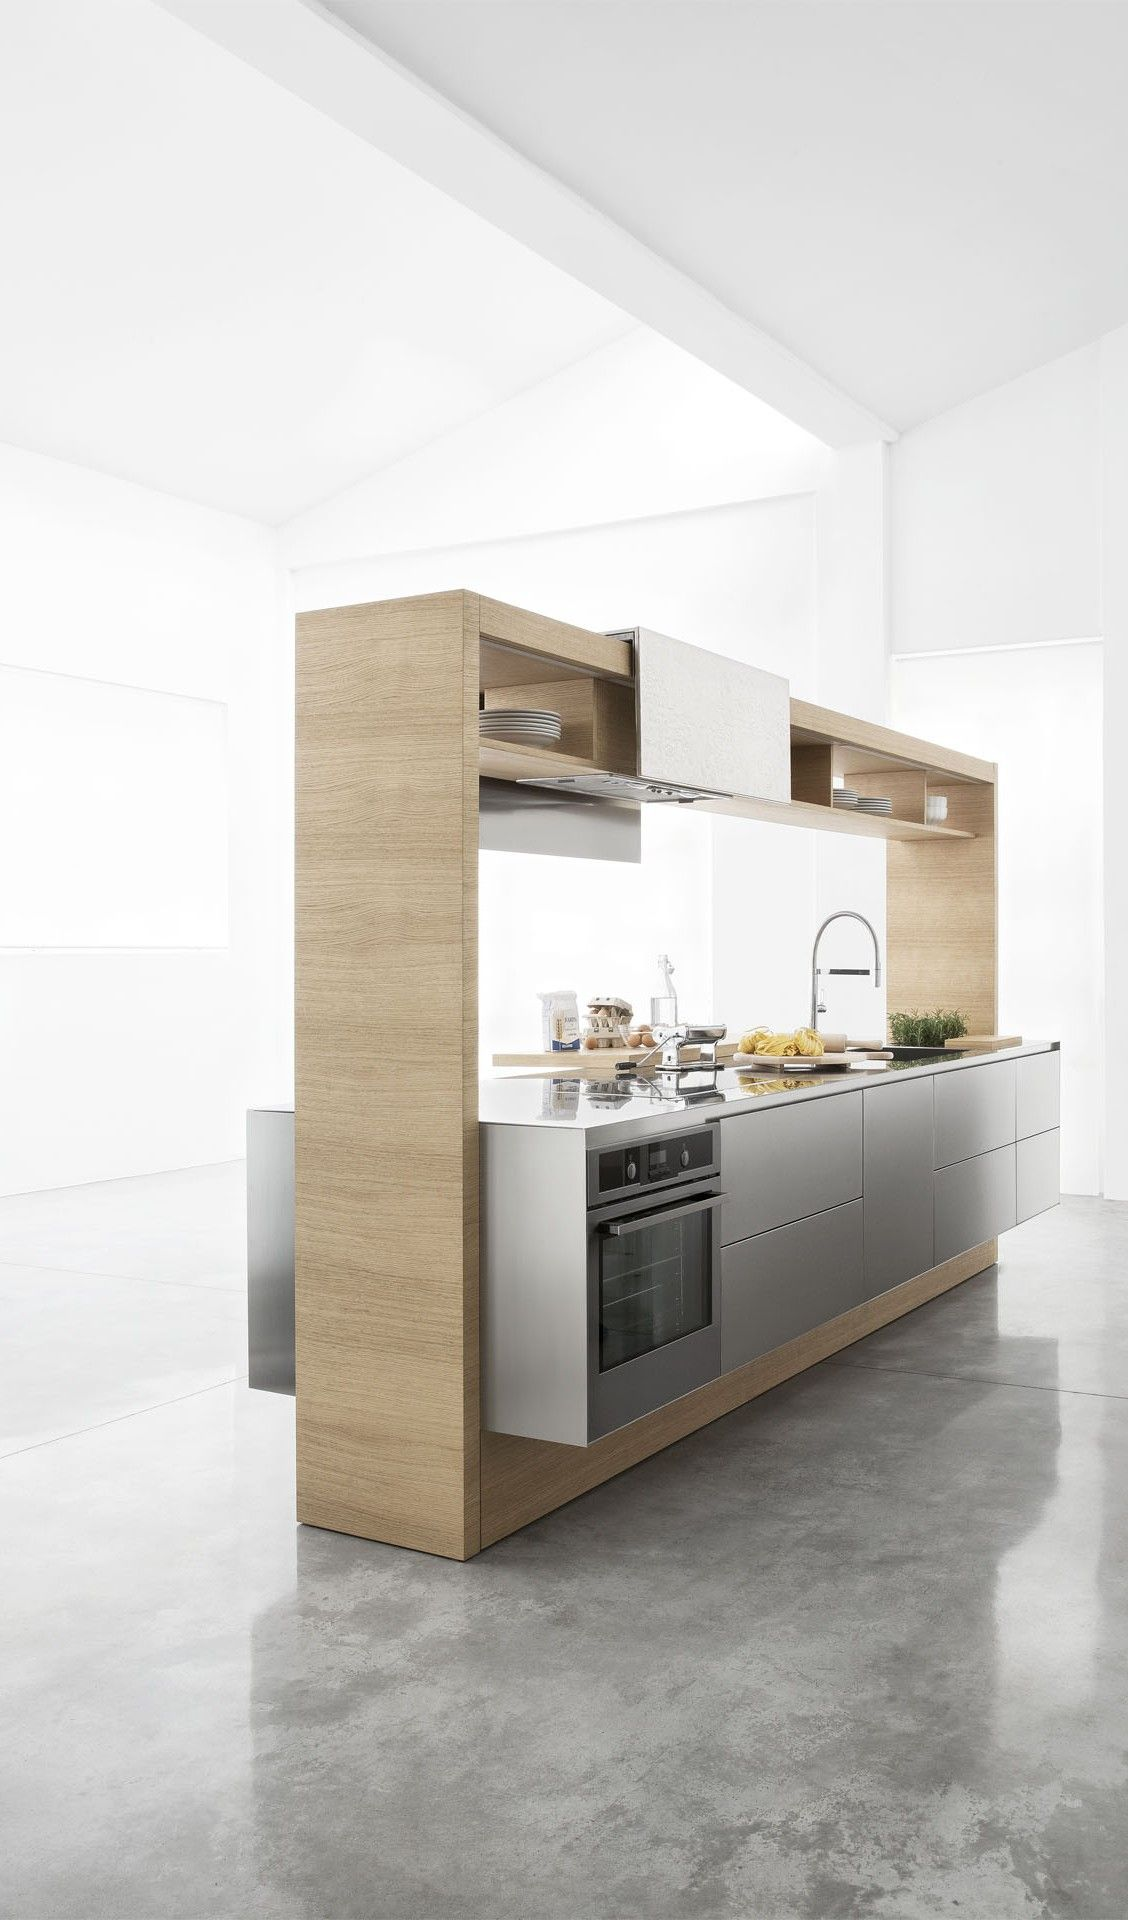 Minimalist Kitchen // The Archea freestanding modular kitchen system ...